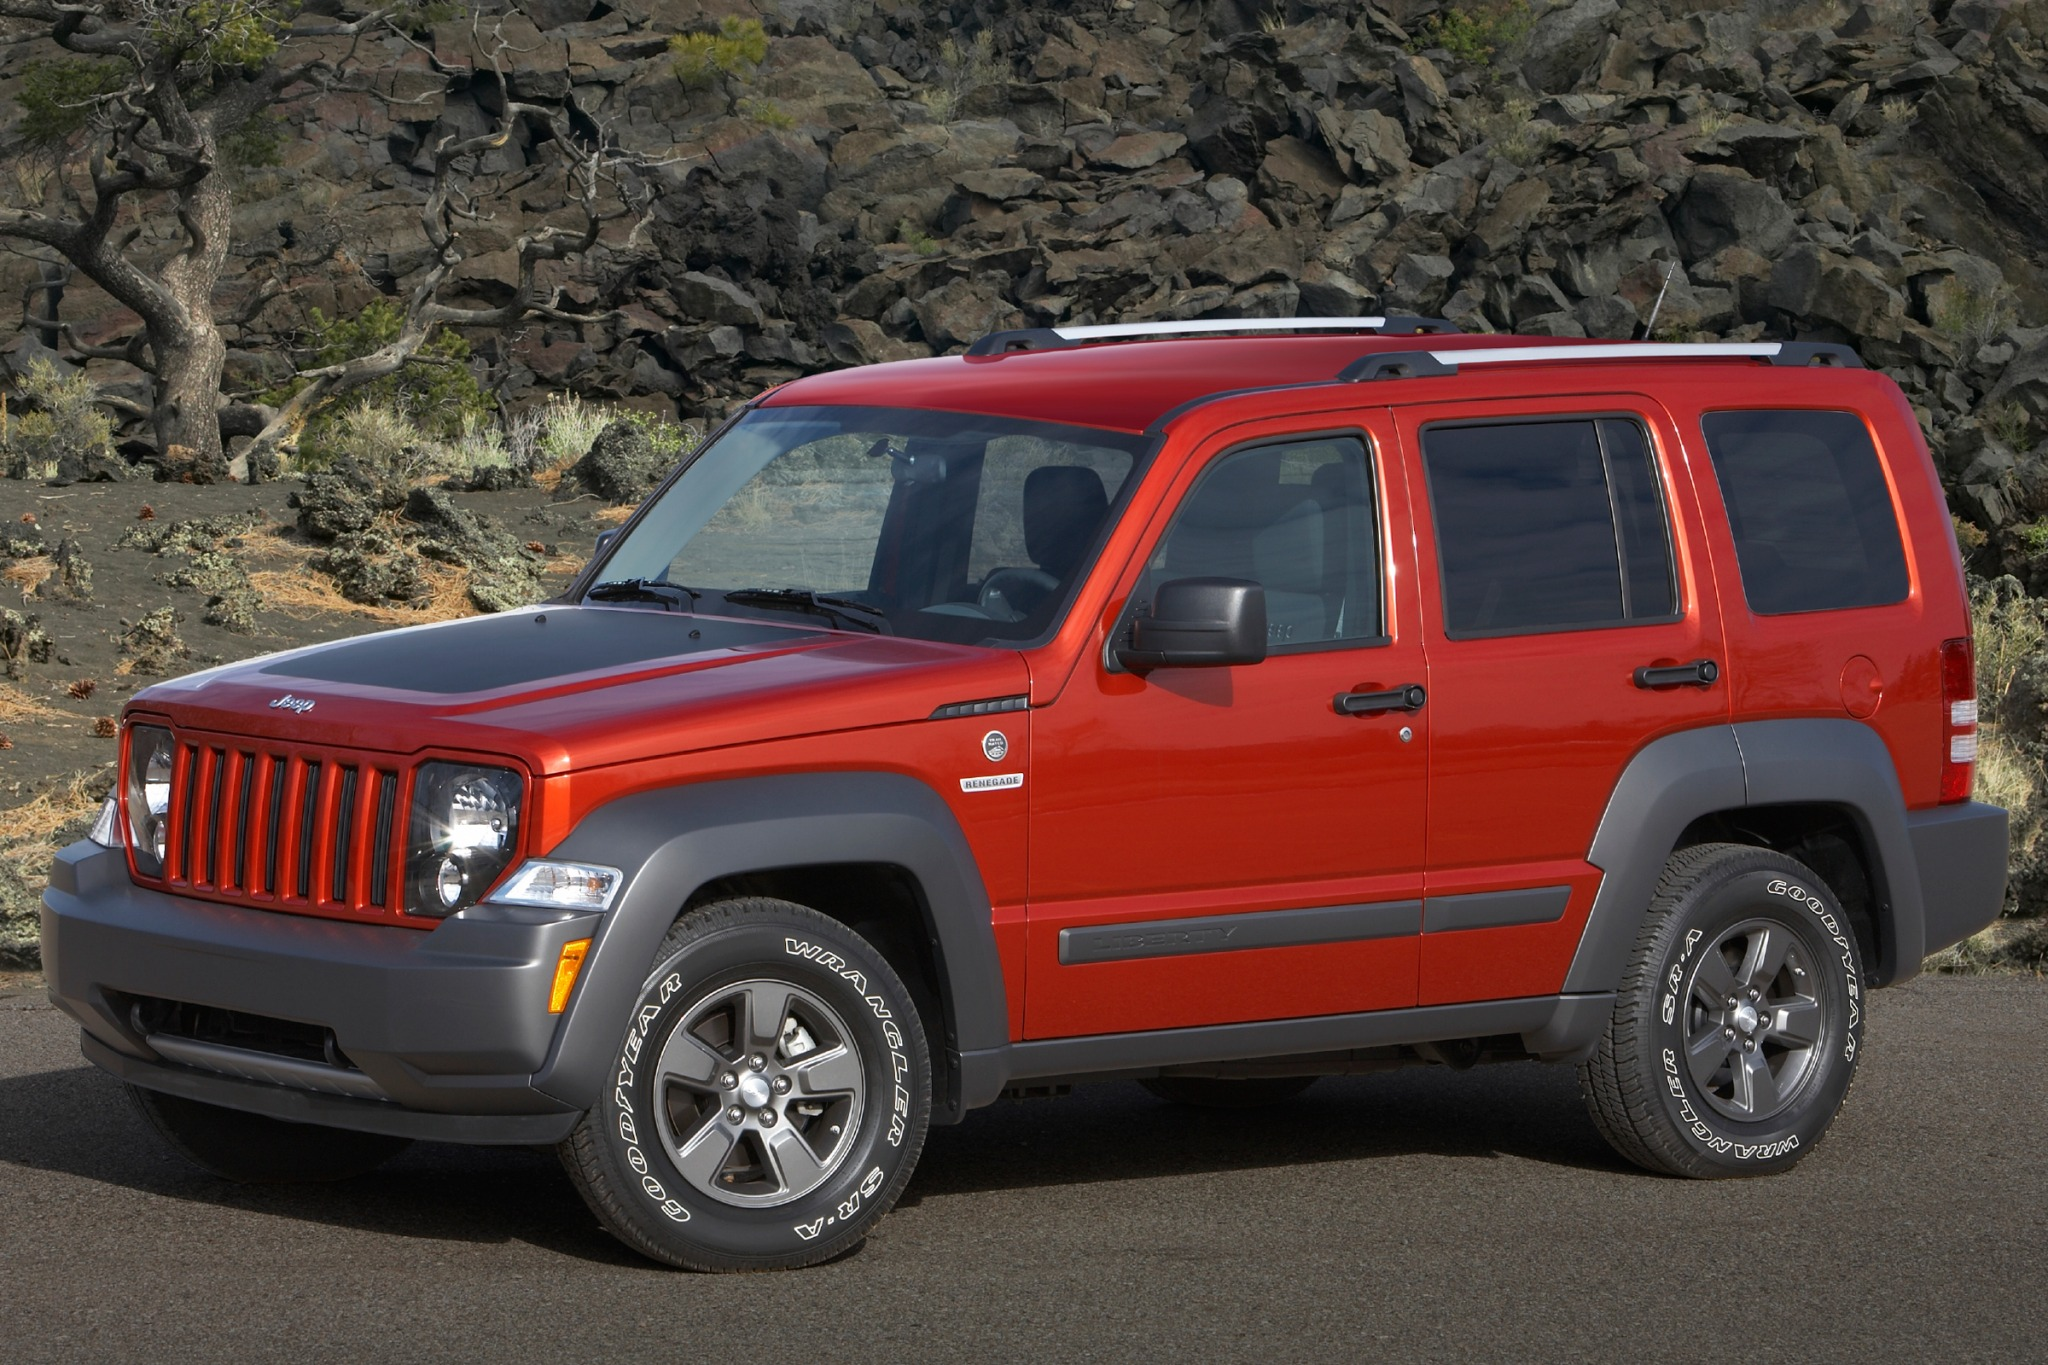 2010 Jeep Liberty Limited interior #4